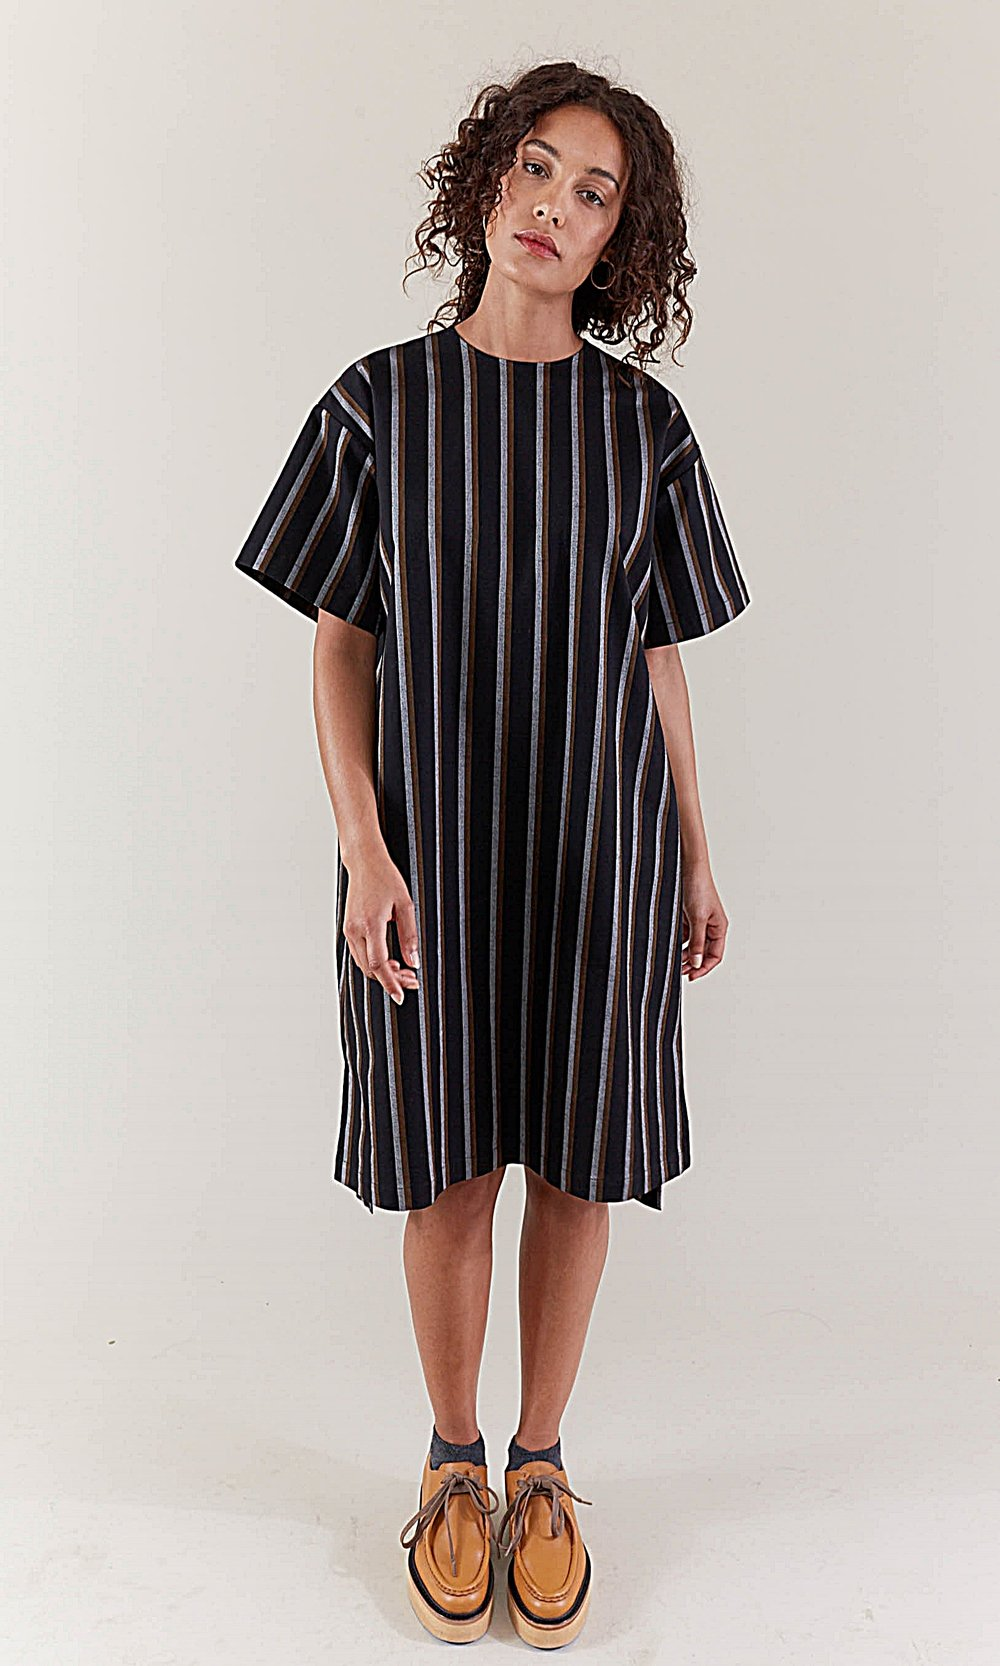 Shosh Stripe mini dress found at PATRICIA in Southern Pines, NC